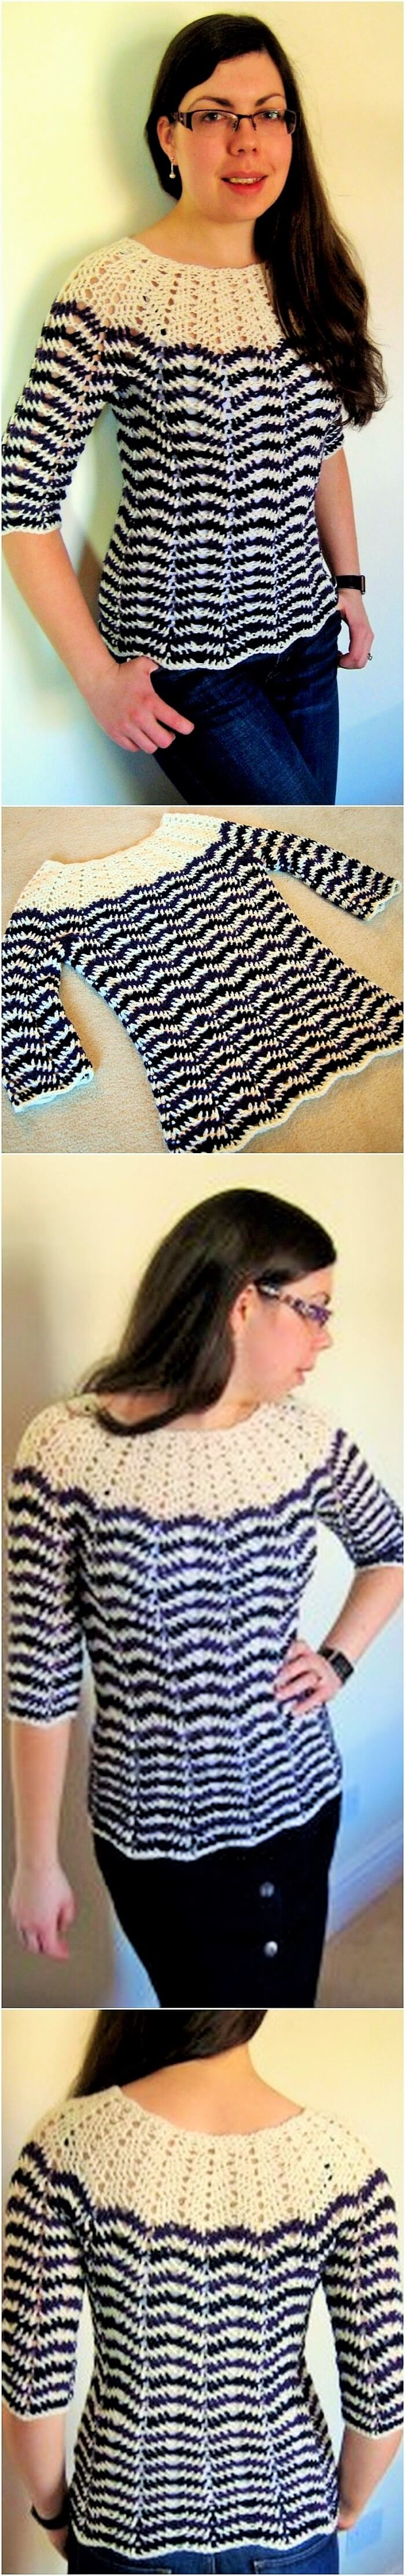 DIY sweater Projects-2